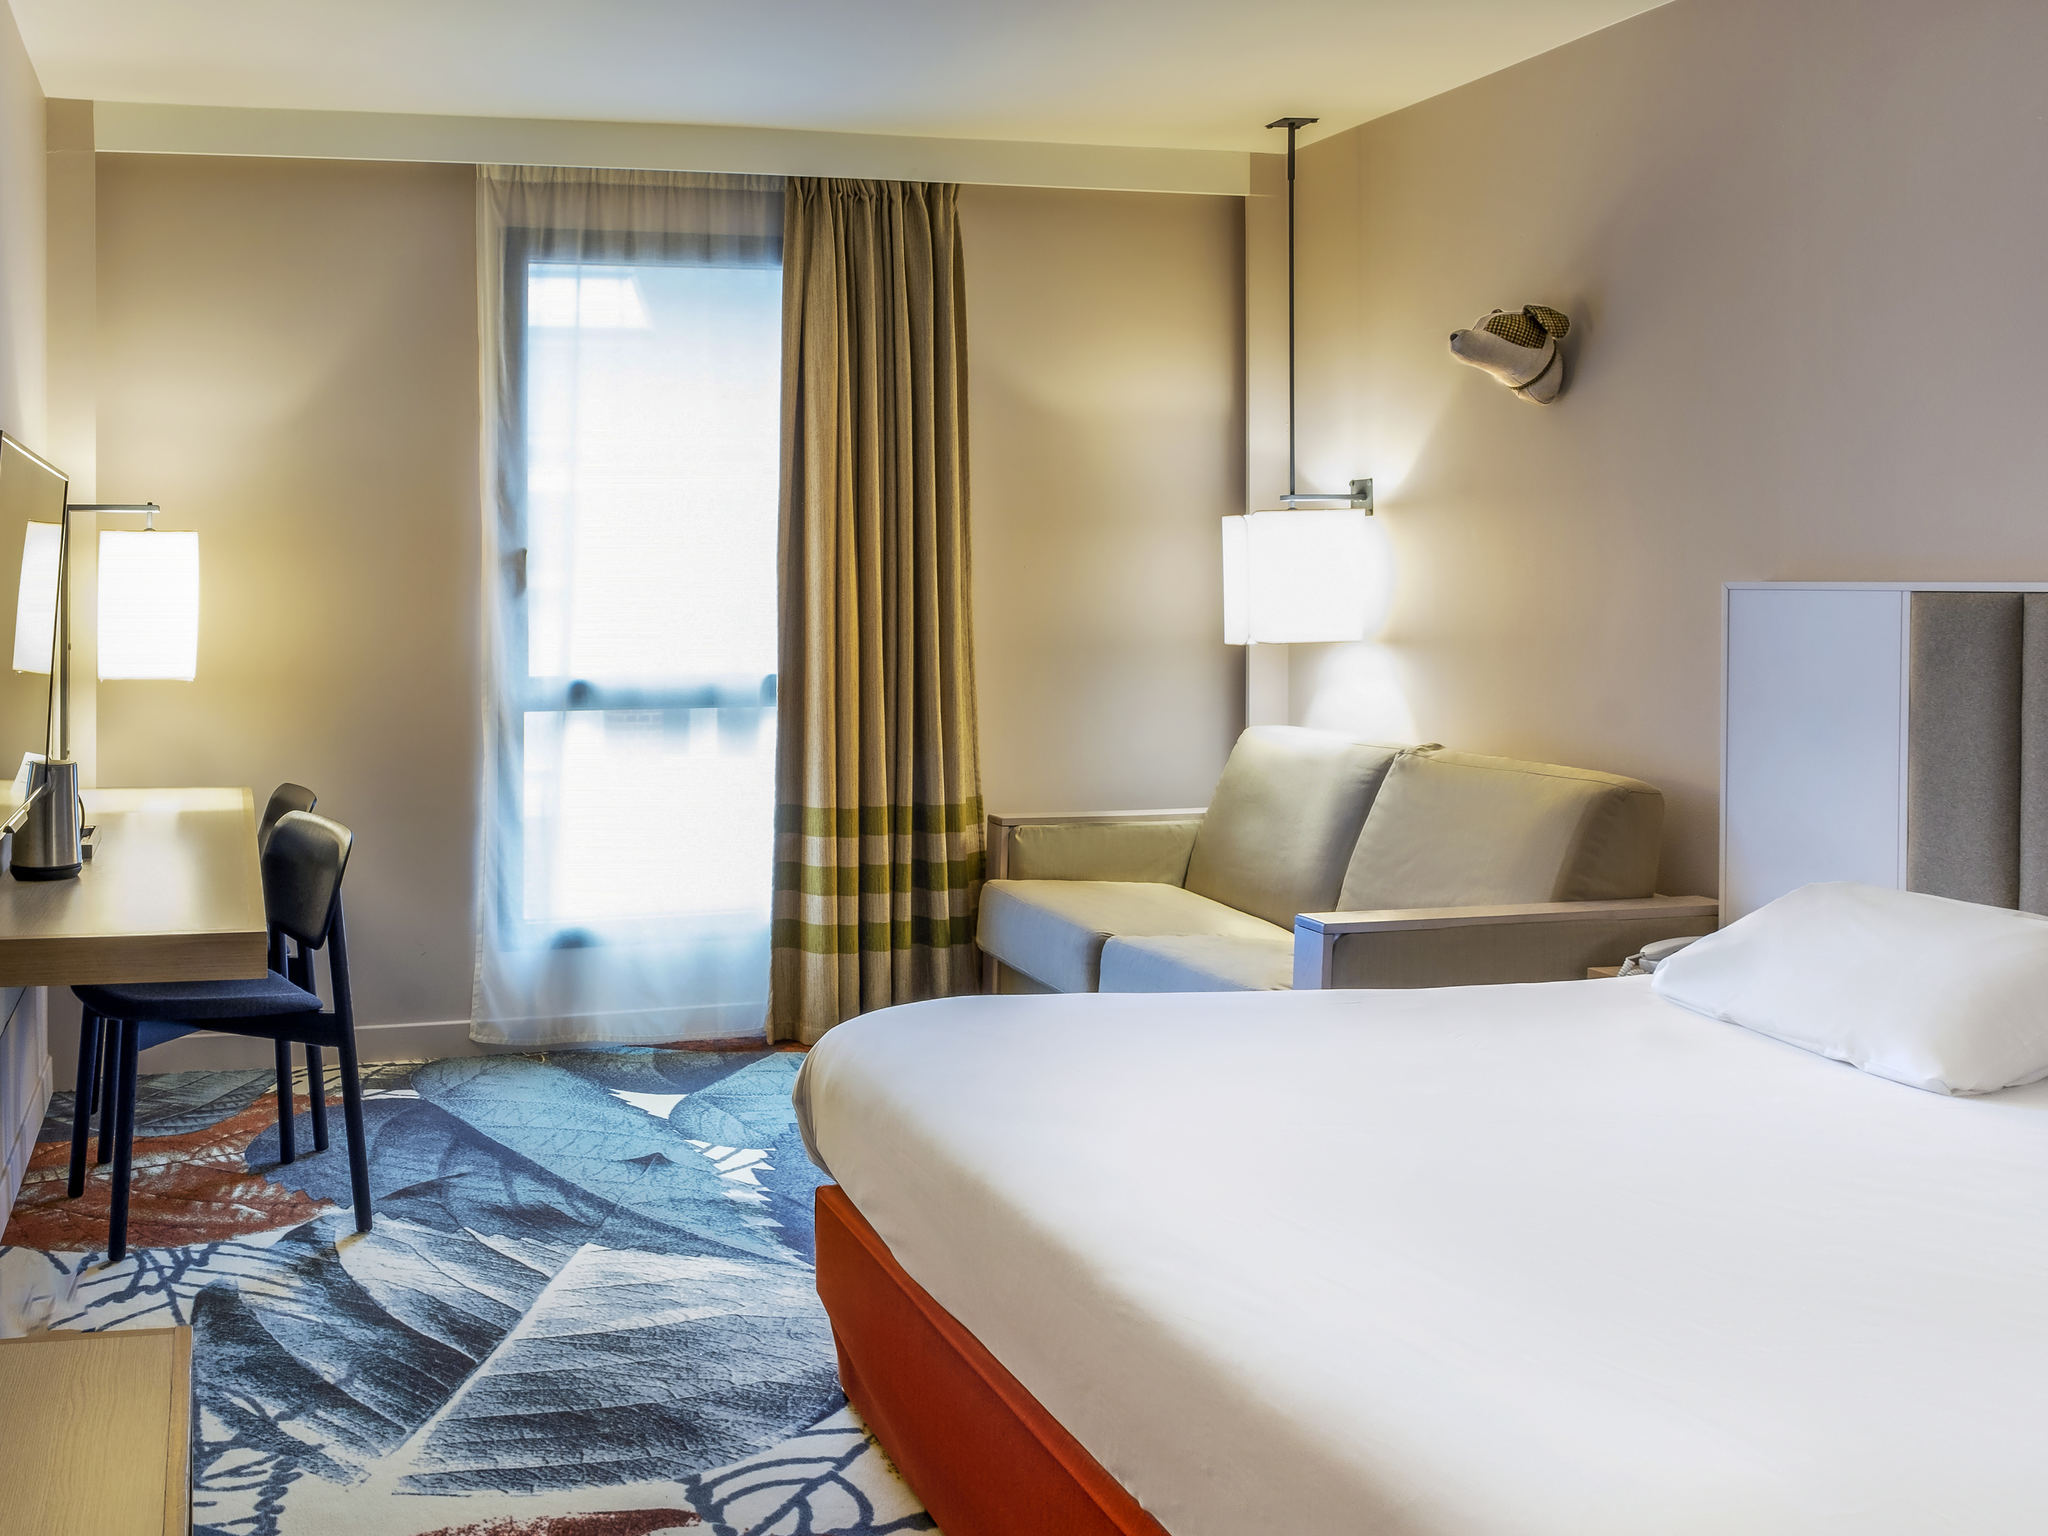 Hotel - Mercure Amiens Cathedrale Hotel